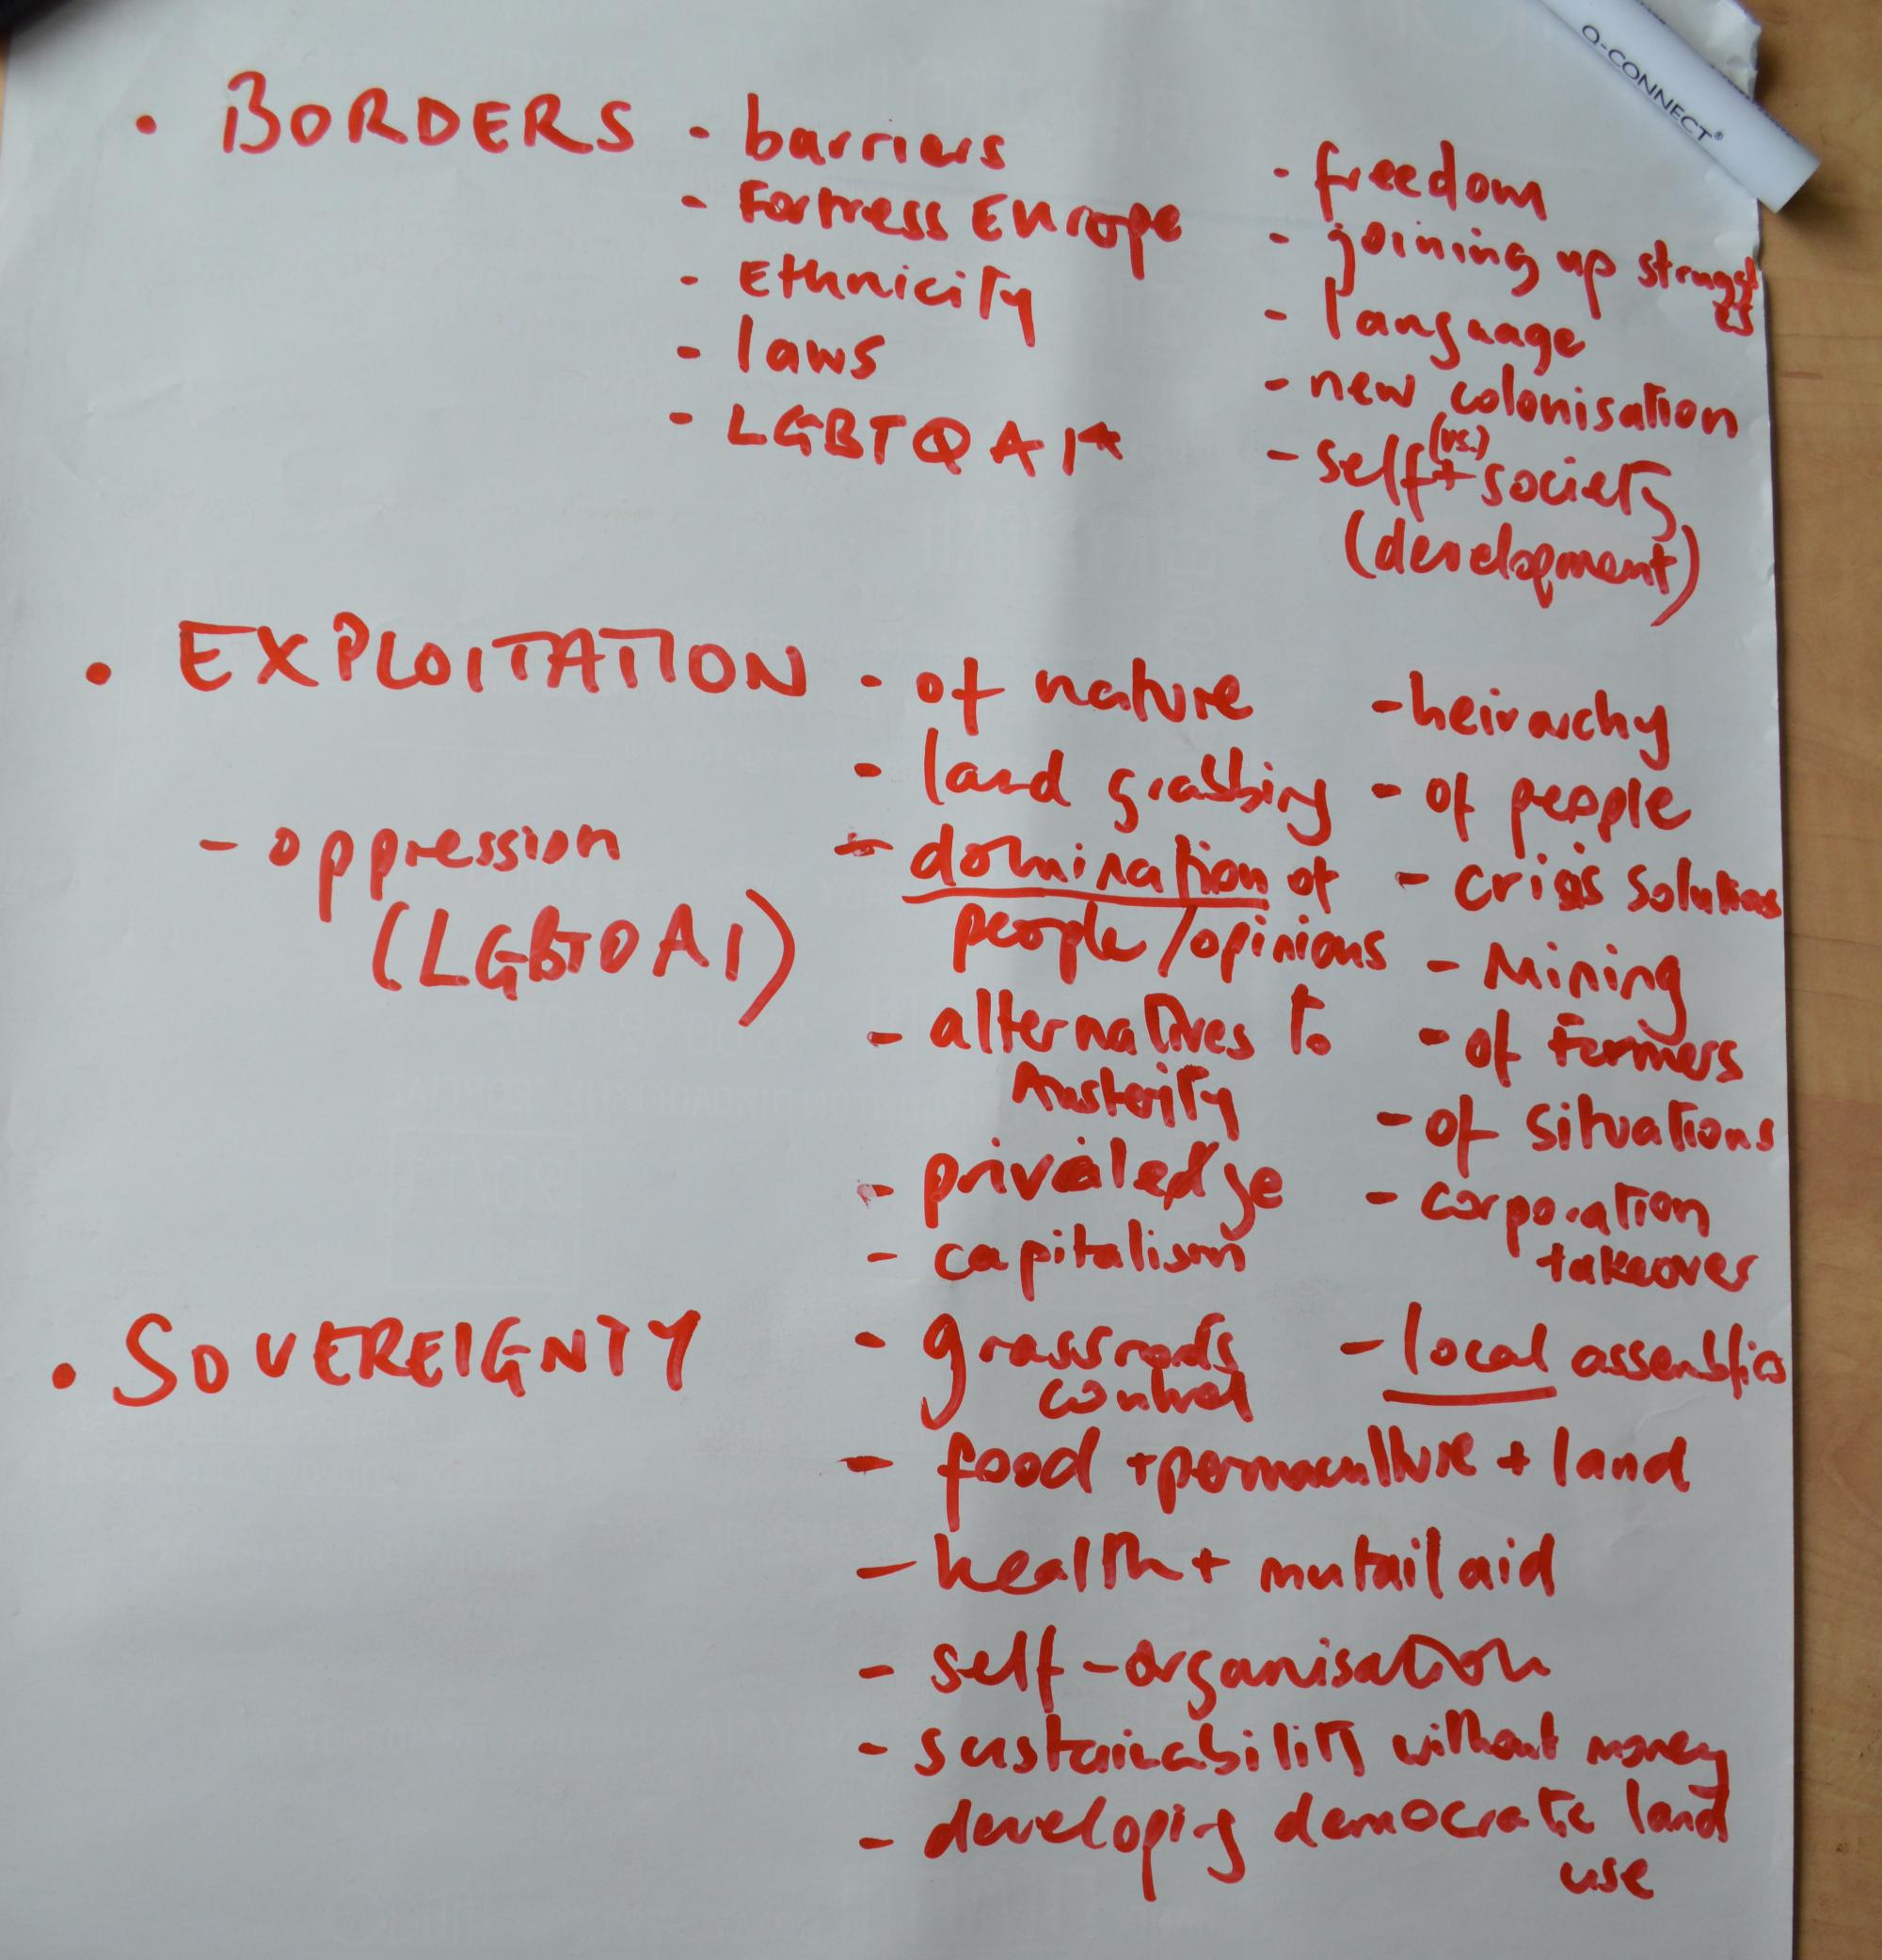 Theme ideas grouped after discussion at spring meeting